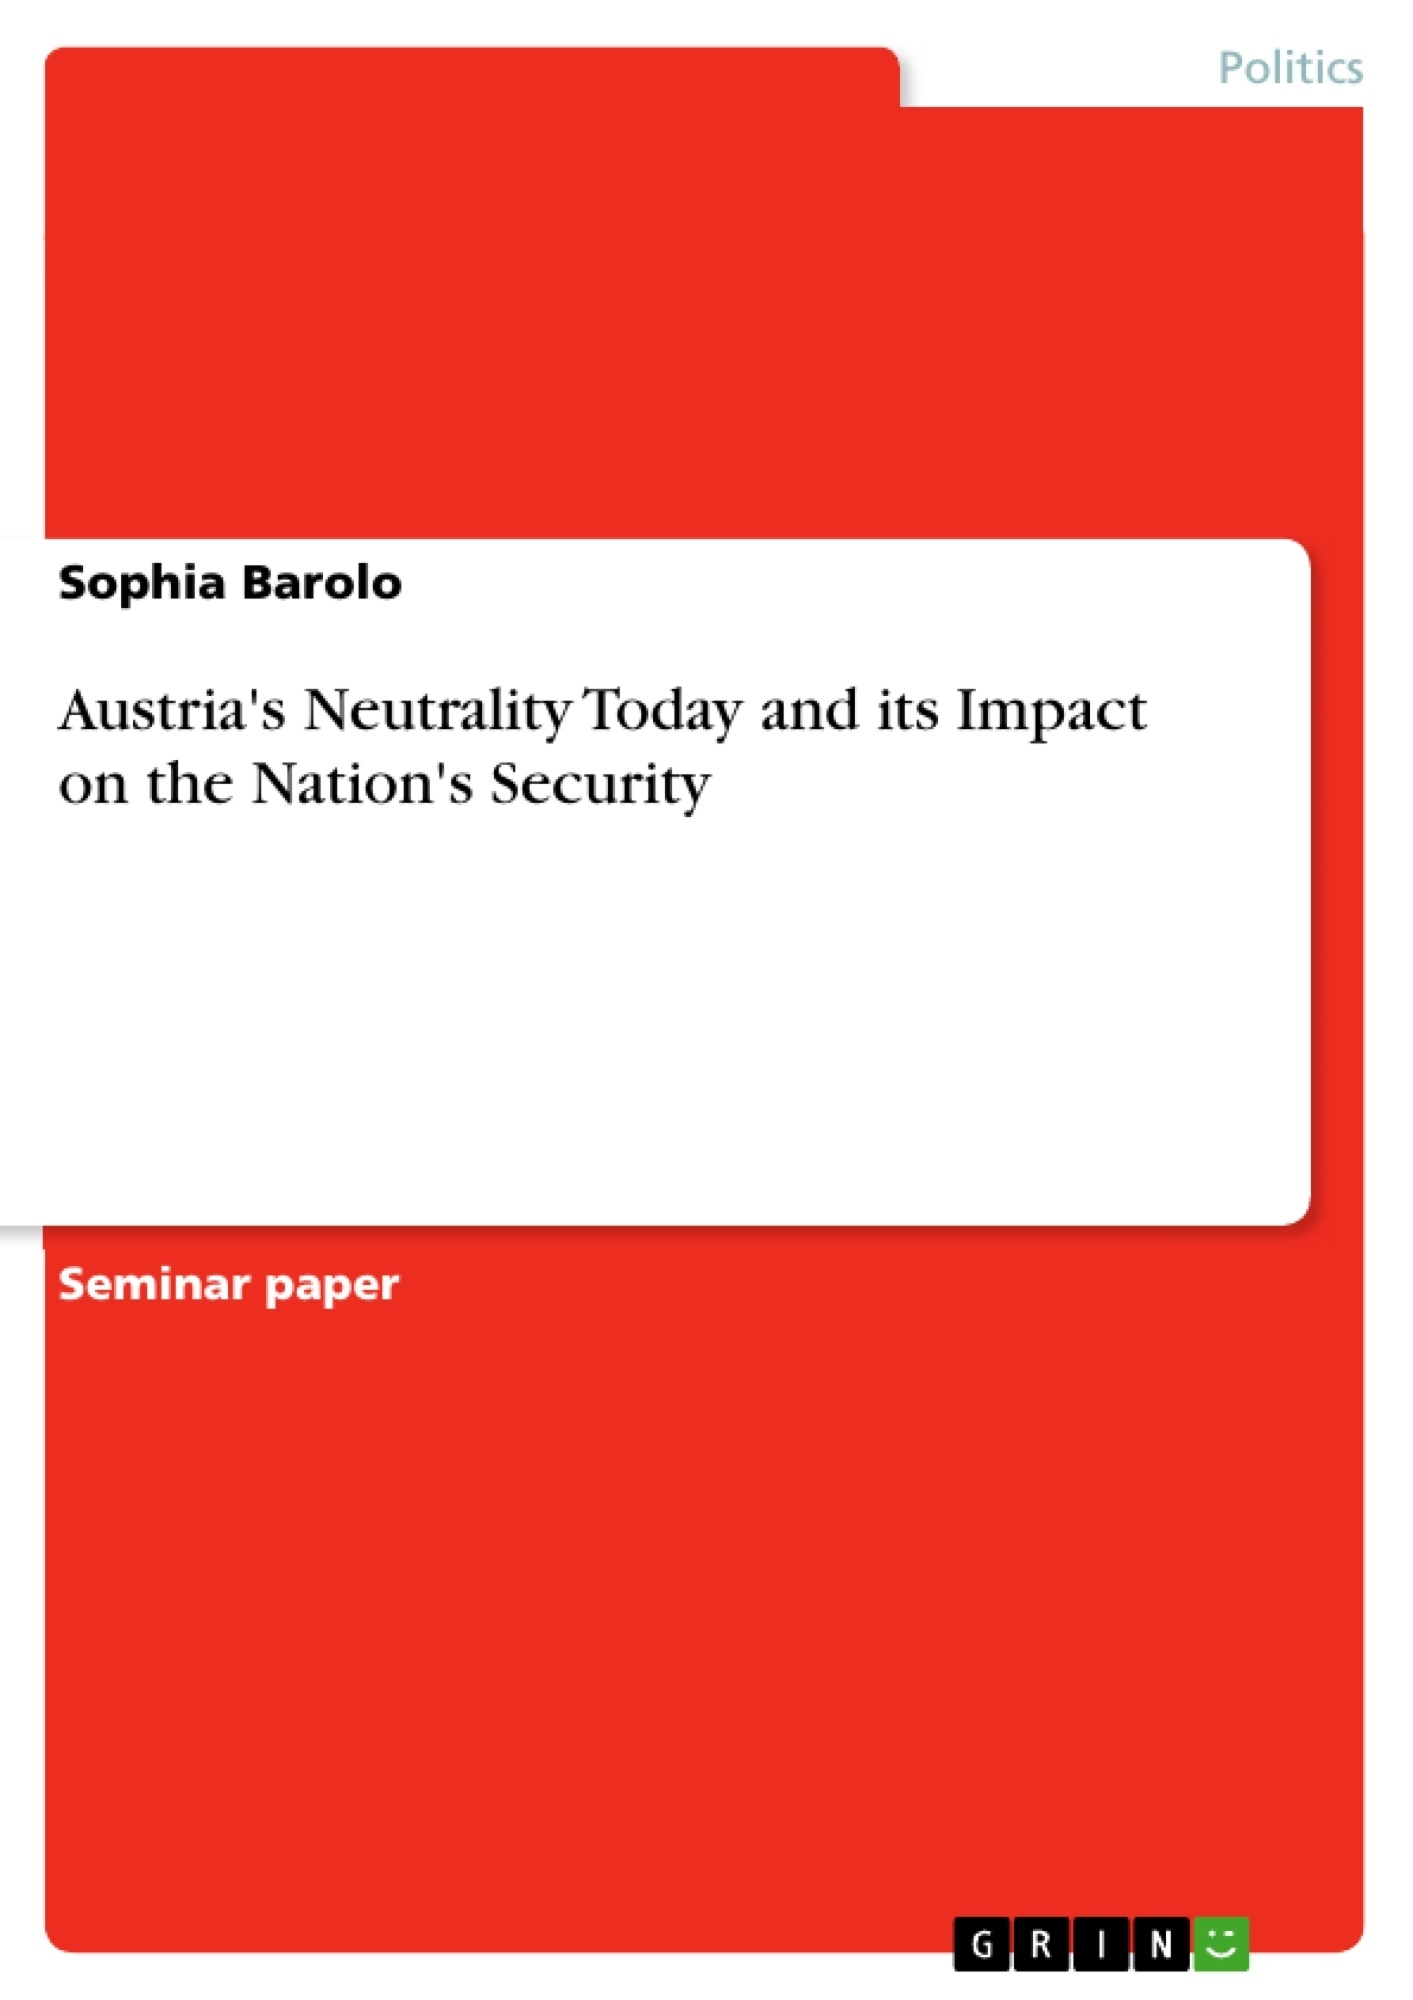 Title: Austria's Neutrality Today and its Impact on the Nation's Security